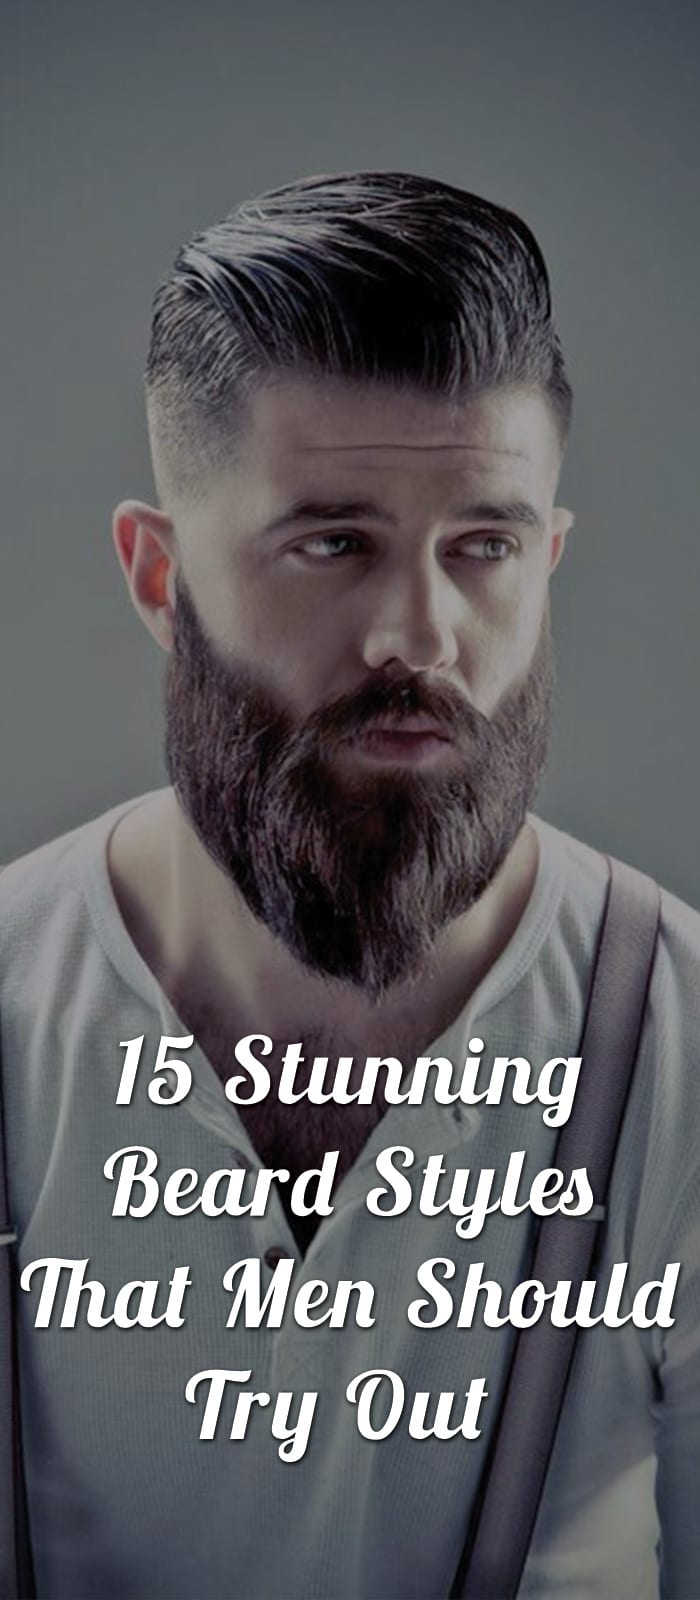 15-Stunning-Beard-Styles-That-Men-Should-Try-Out